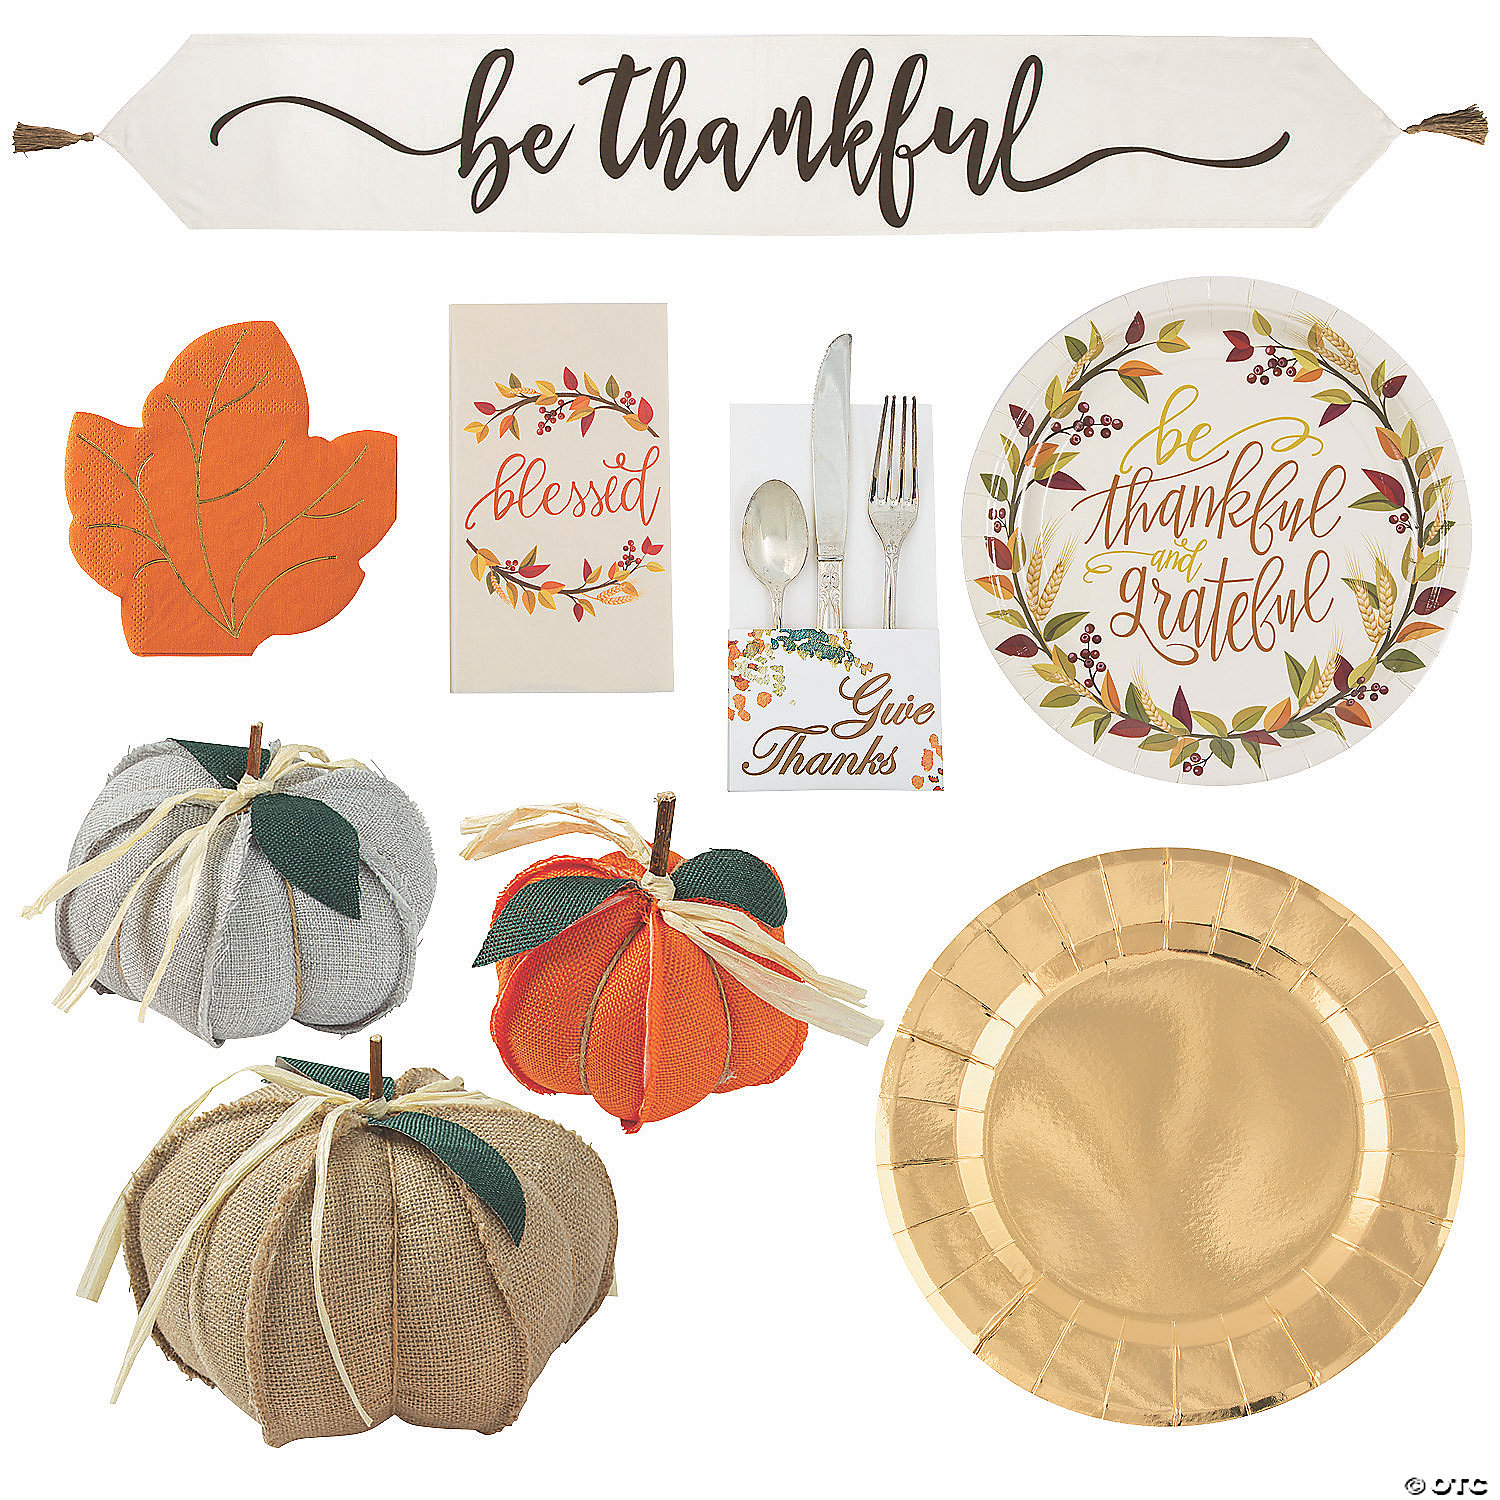 """6RS334 8.75/"""" x 6.75/"""" x 7.5/"""" Resin Thanksgiving Turkey Table Decoration"""